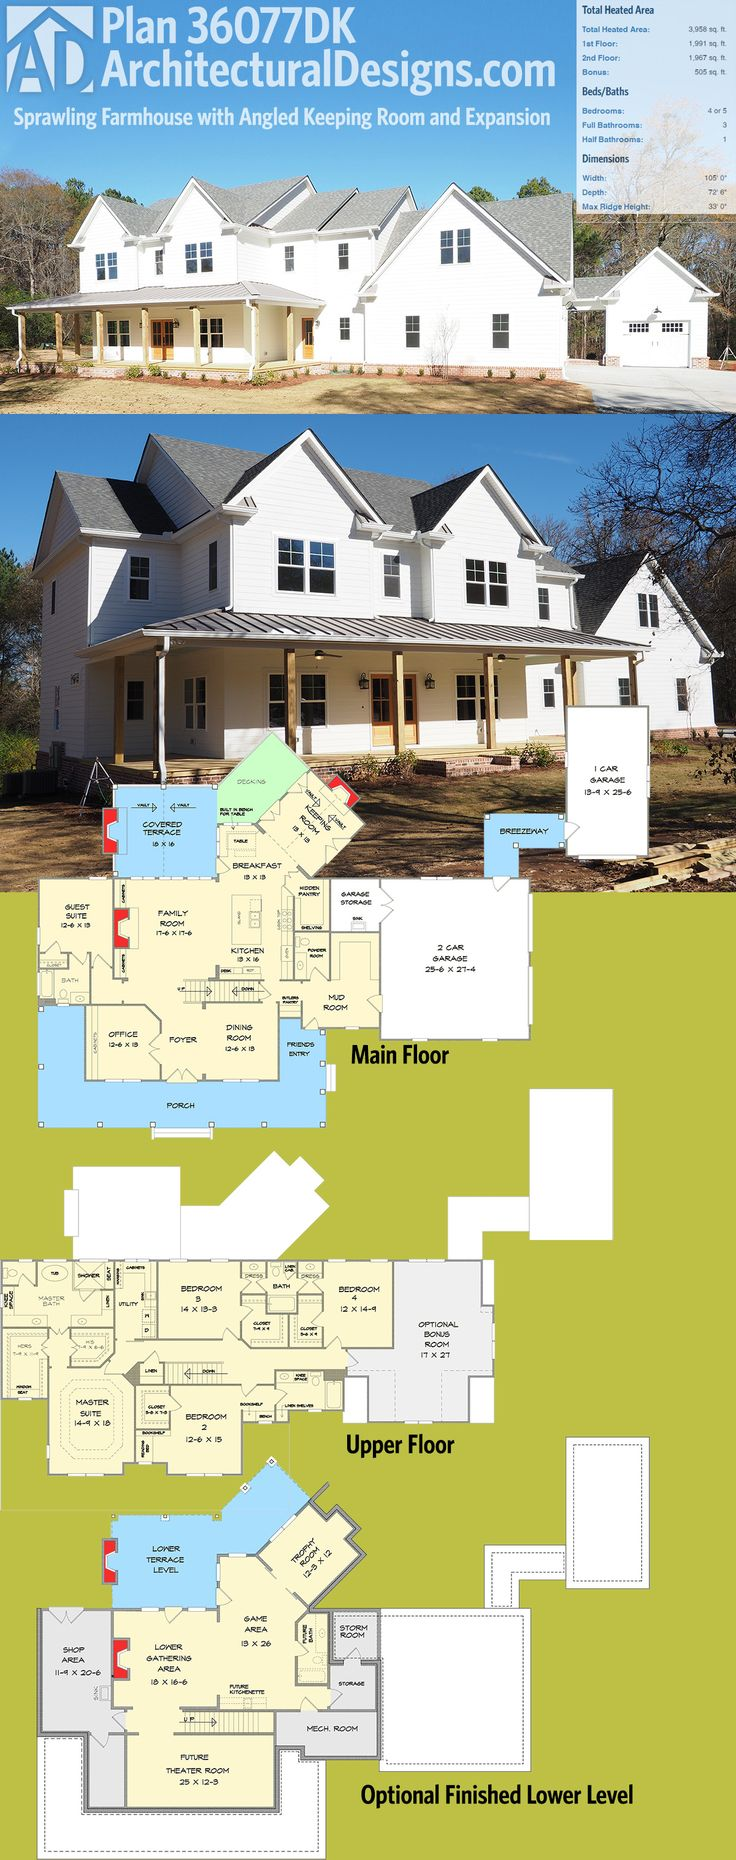 Upstairs House Plans Of Best 25 Farmhouse Floor Plans Ideas On Pinterest